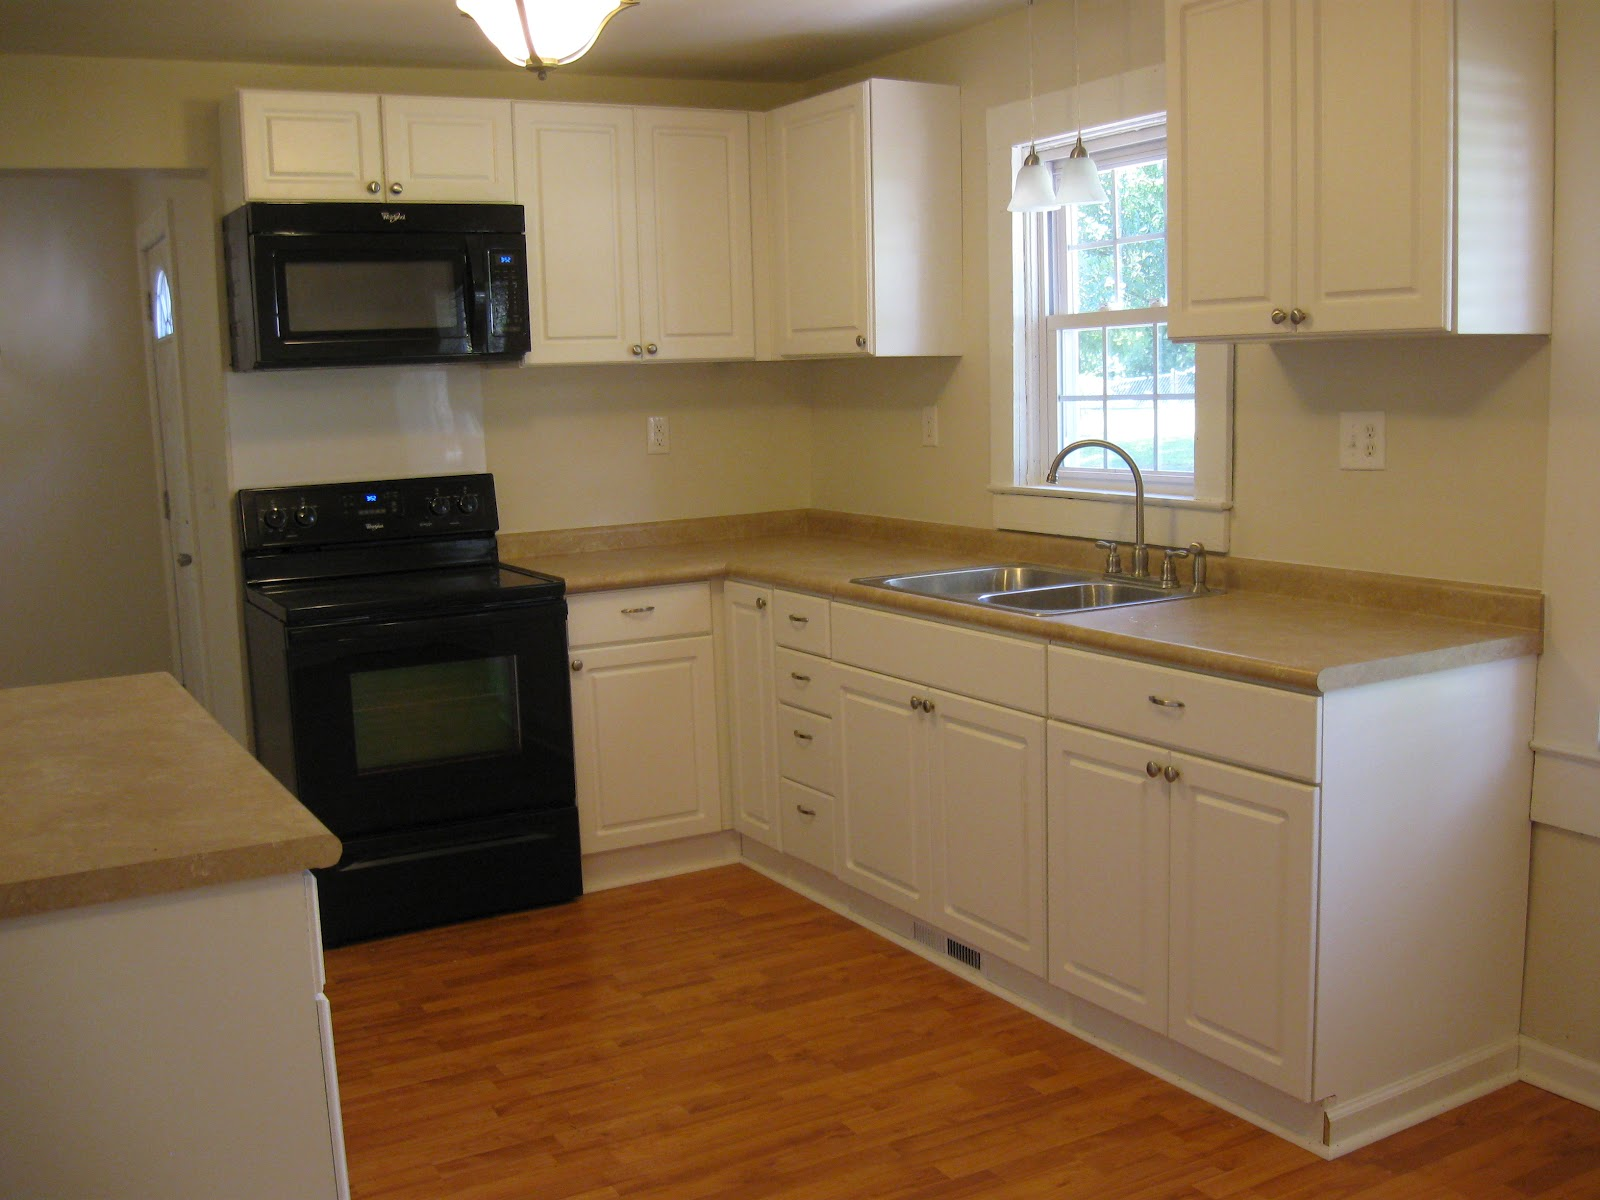 paint and white trim paint to the kitchen as wells as the laminate